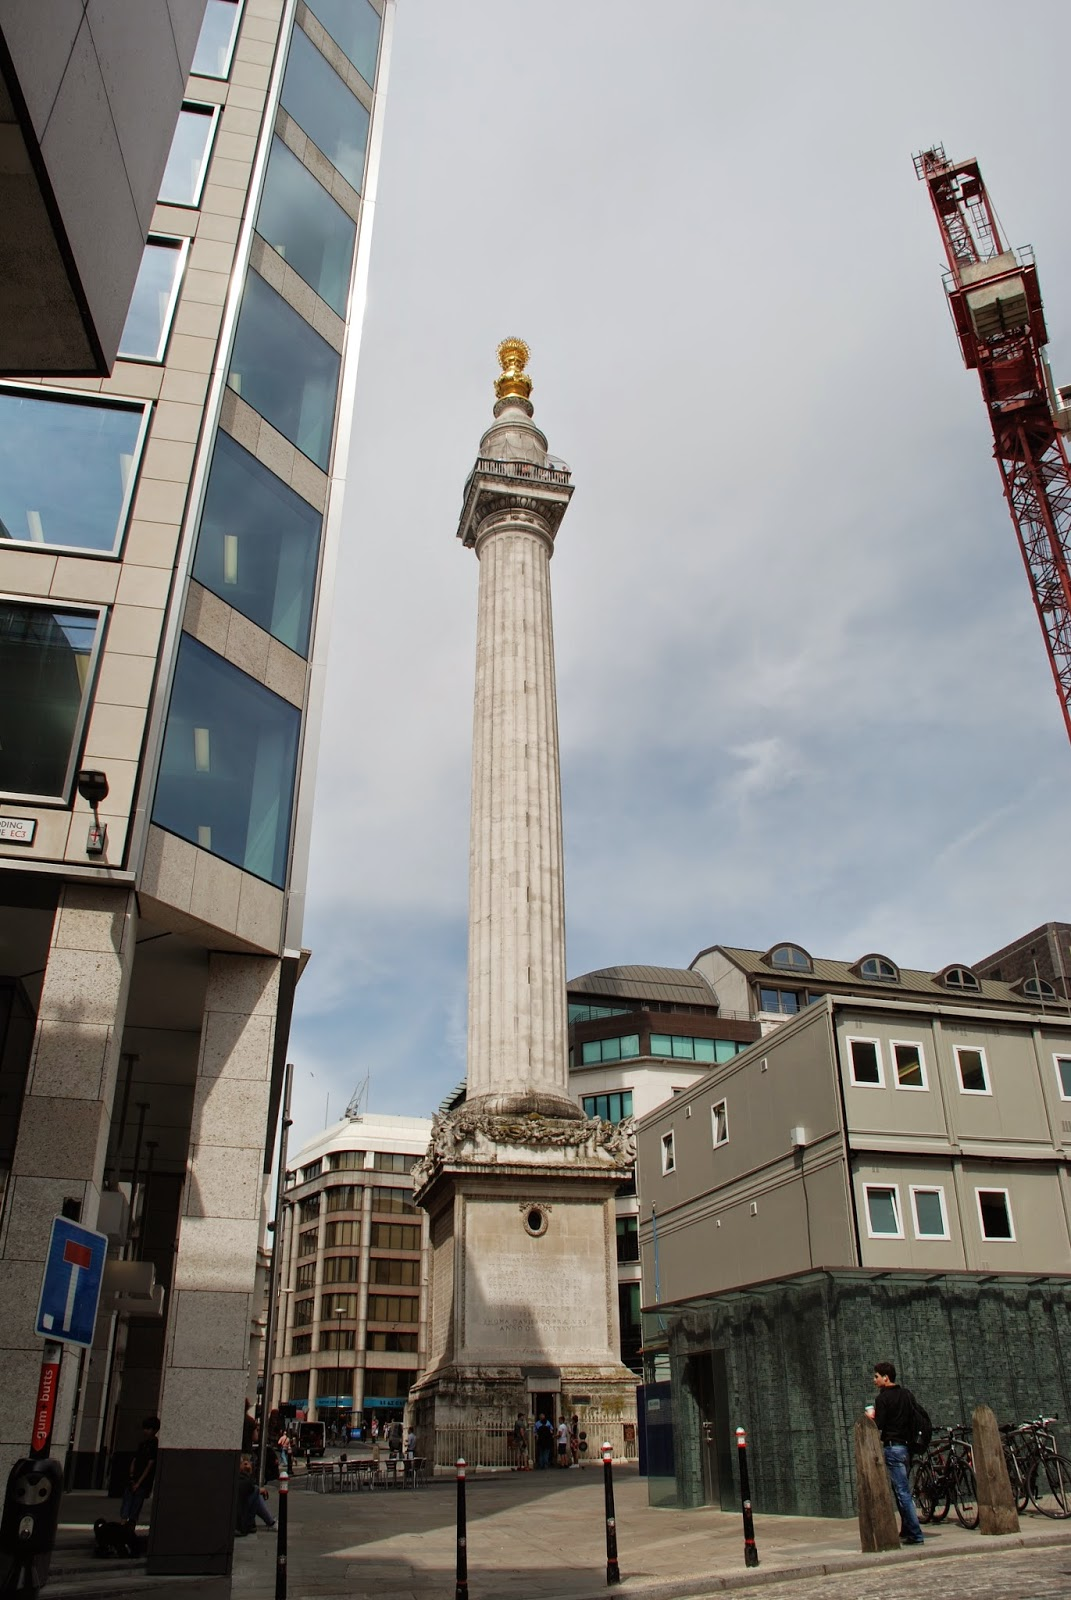 The Monument, London